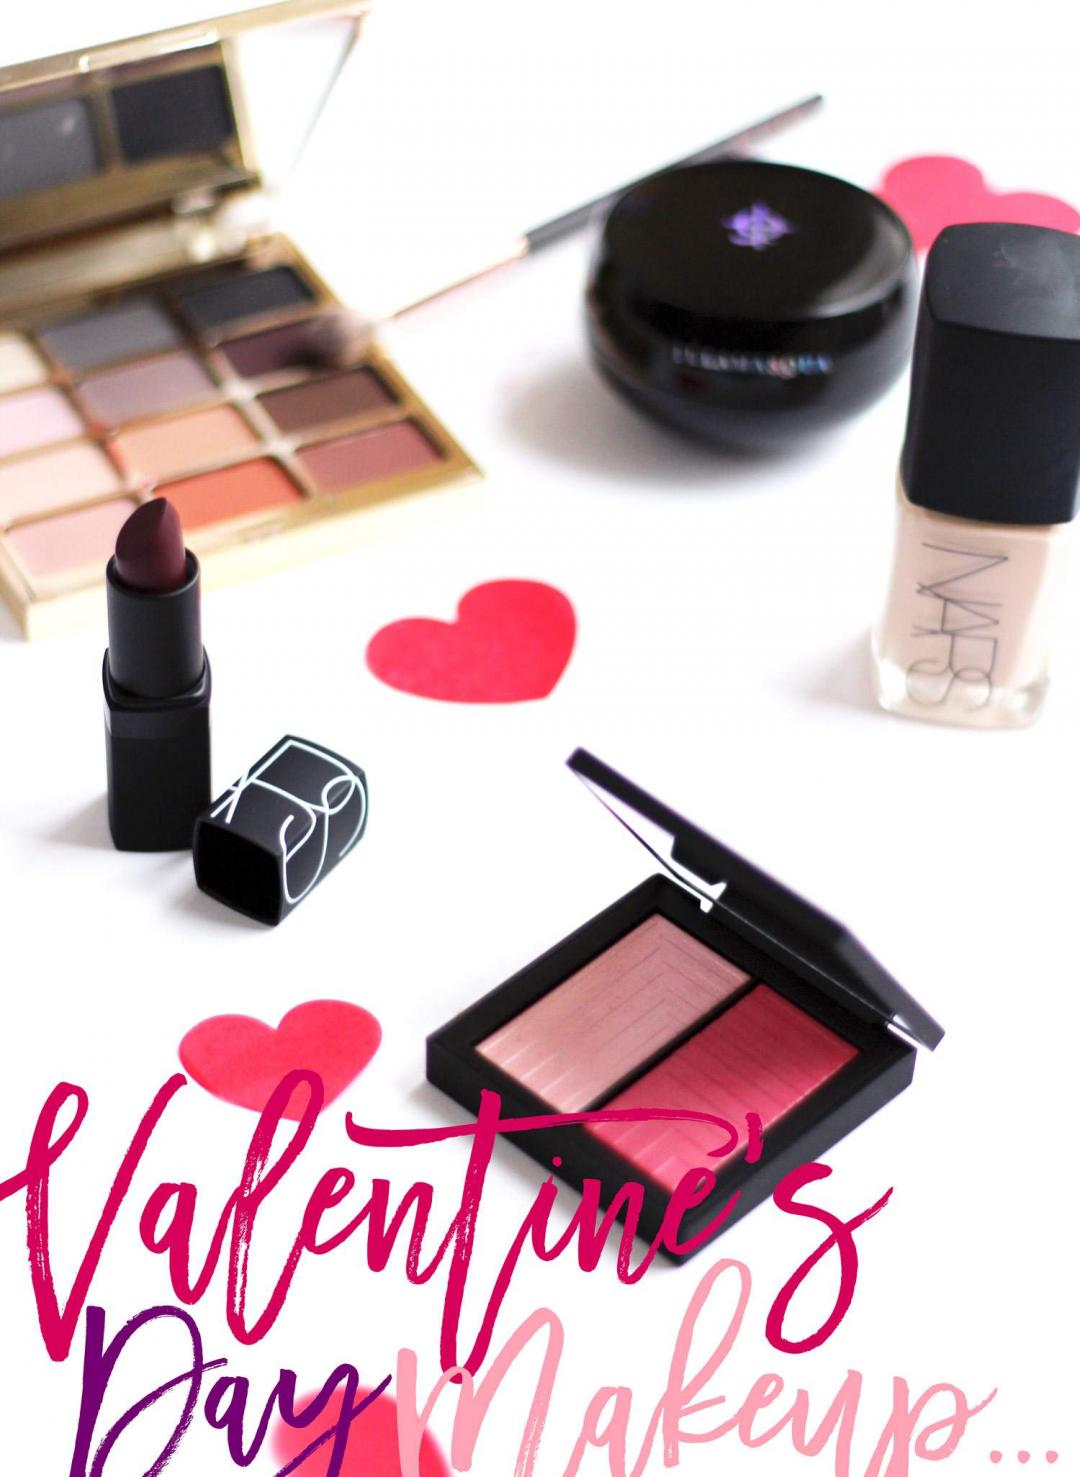 valentines-day-makeup-asos-beauty-NARS-dual-intensity-blush-stila-eyeshadow-palette-illamasqua-radiance